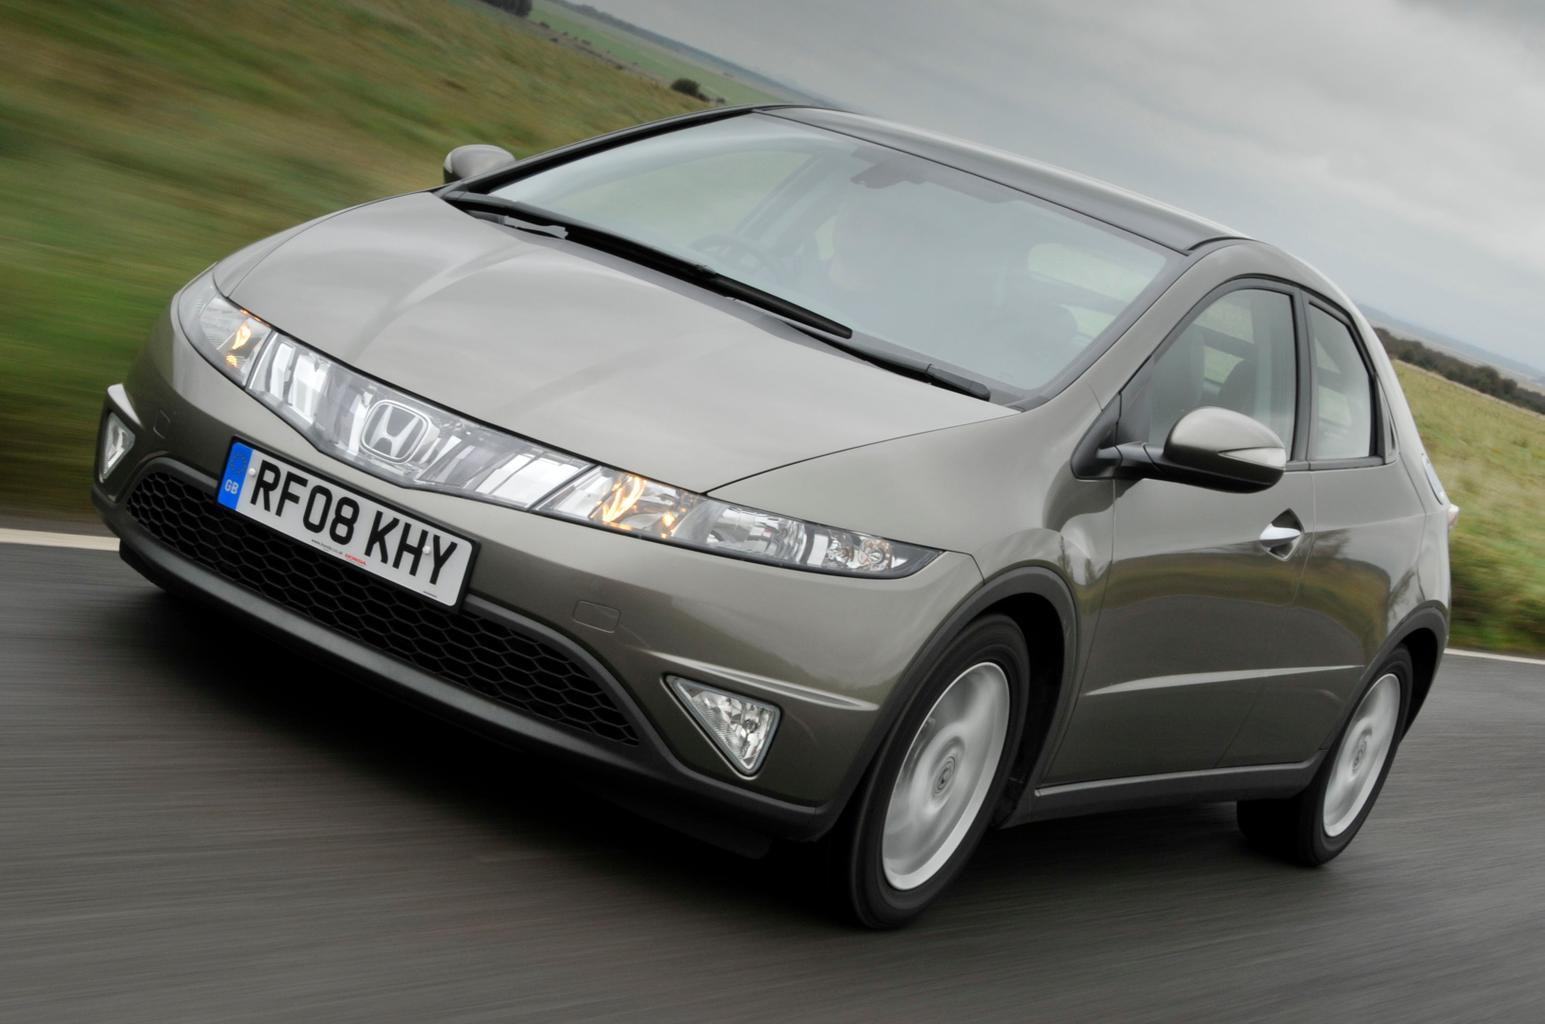 Used test: Honda Civic vs Volkswagen Golf vs Audi A3 vs BMW 1 Series